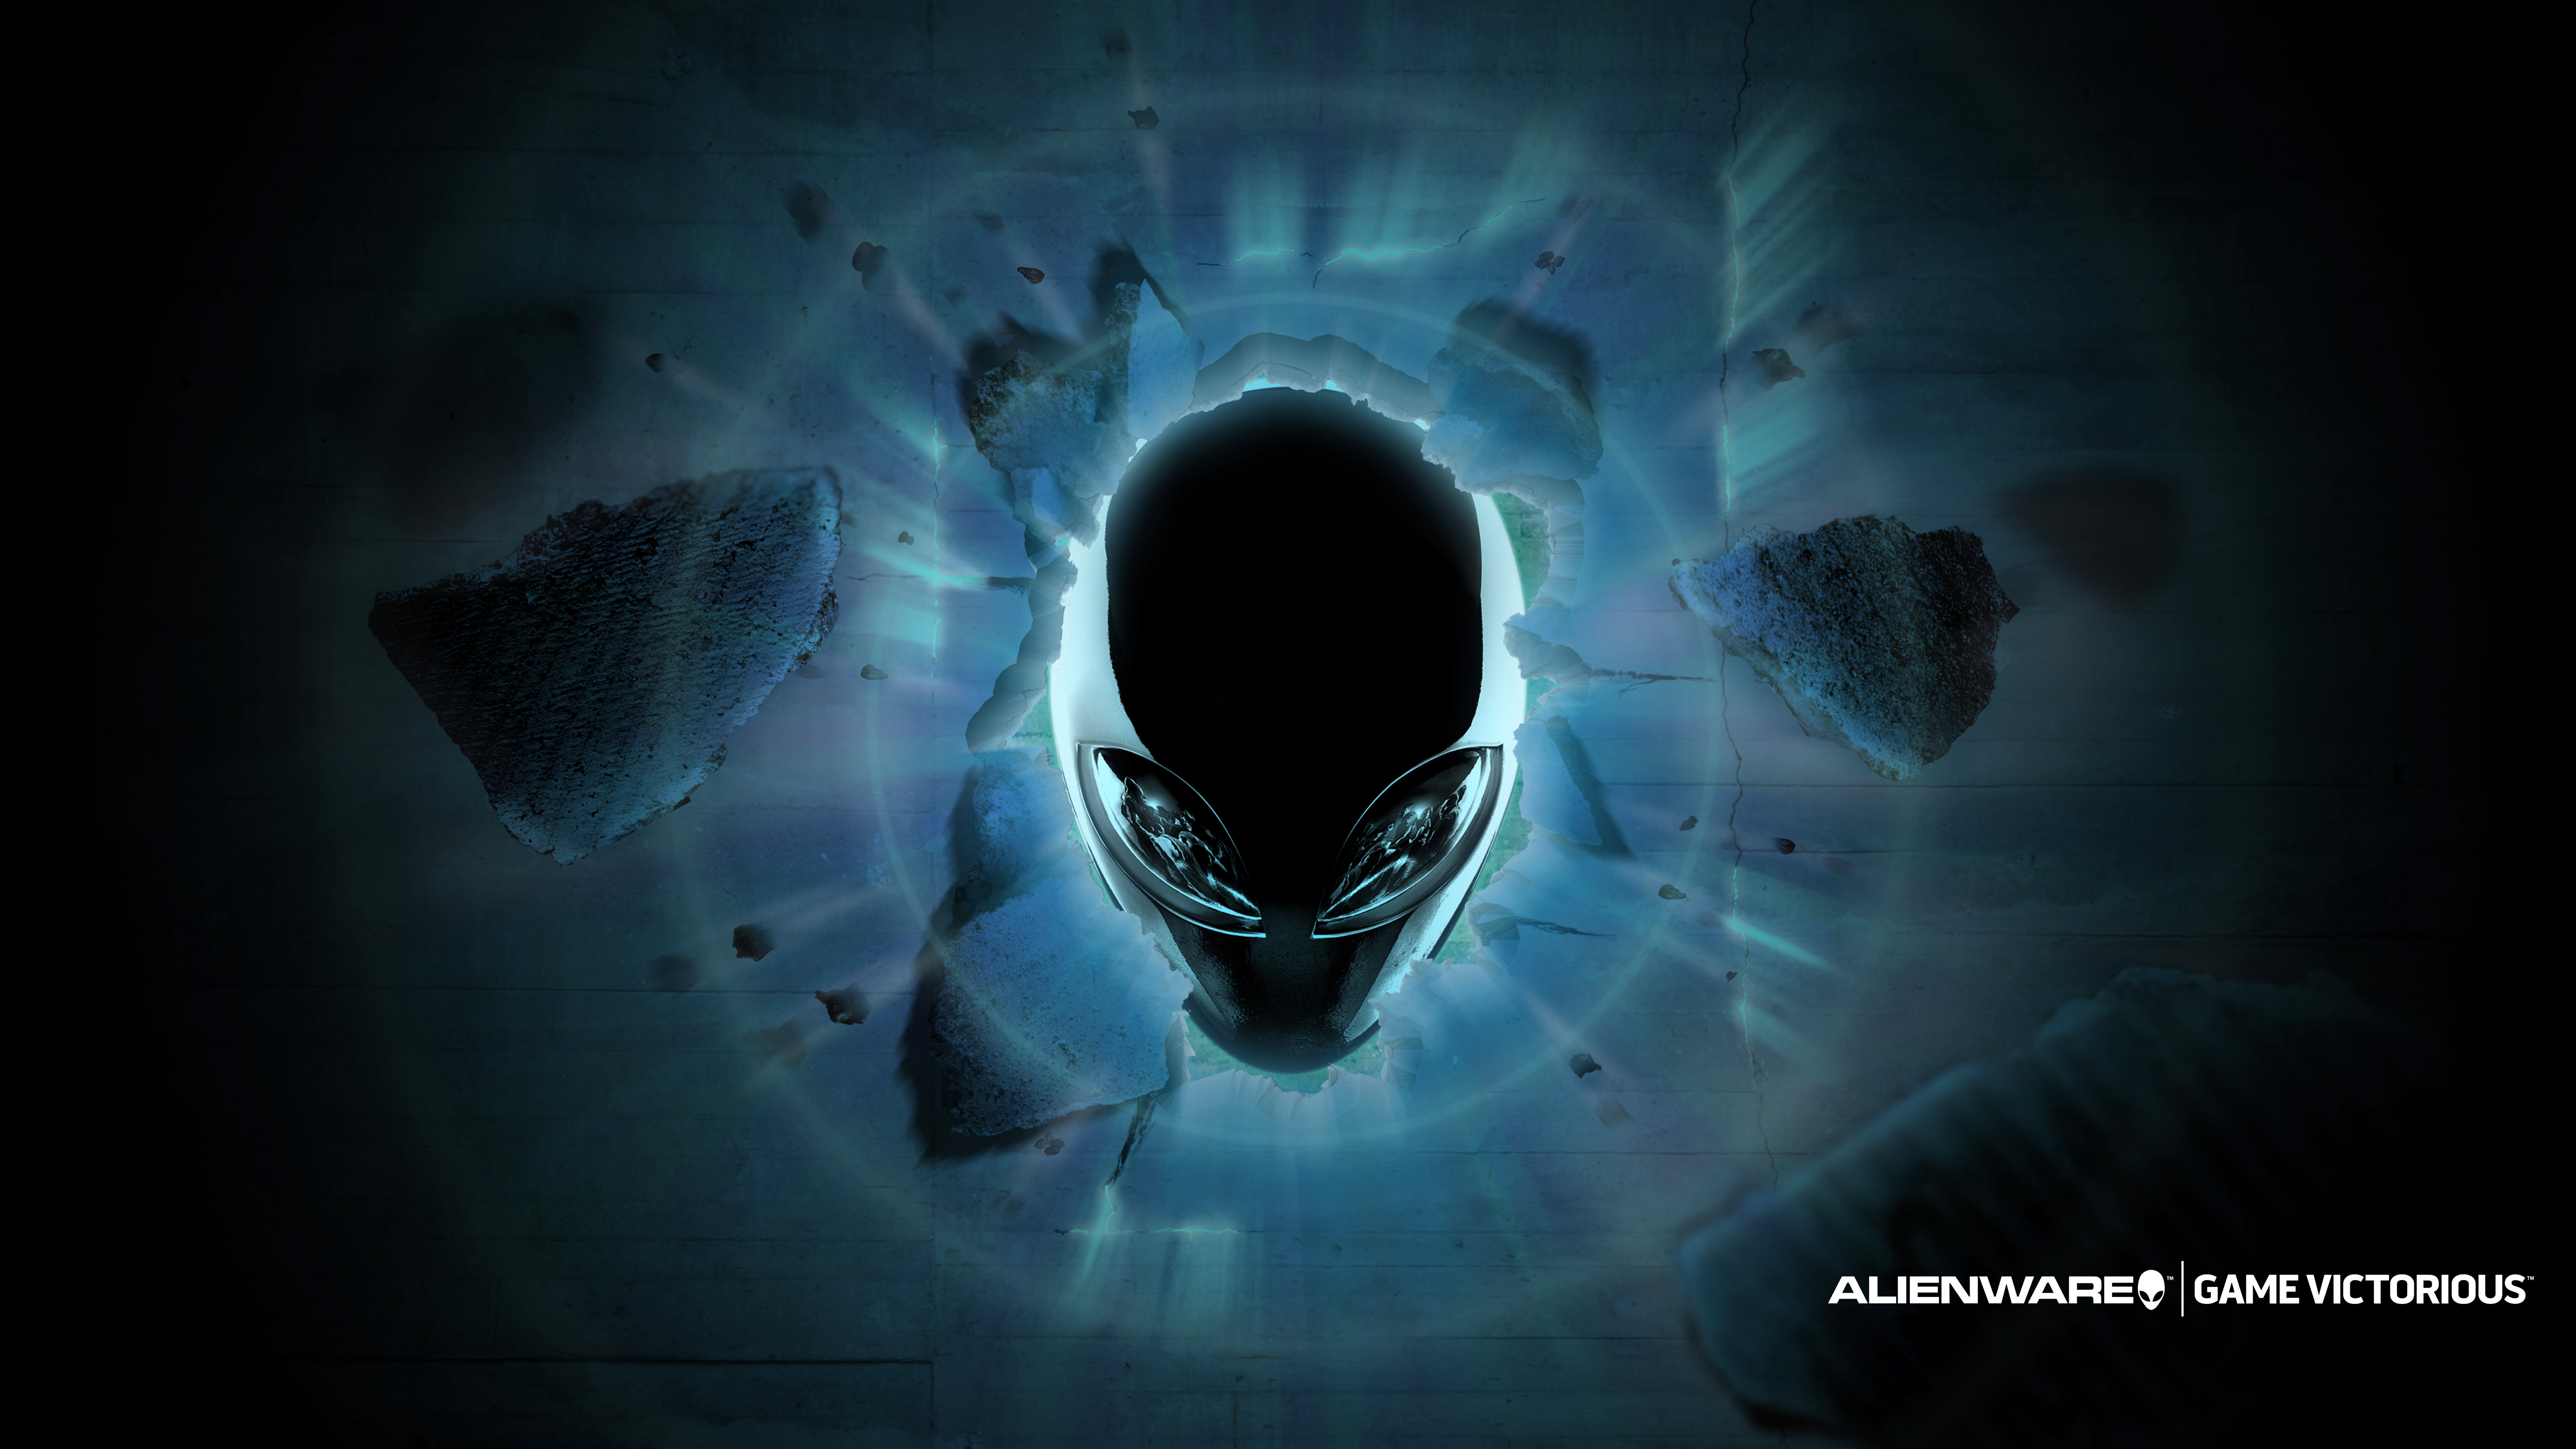 46 Alienware Live Wallpapers On Wallpapersafari